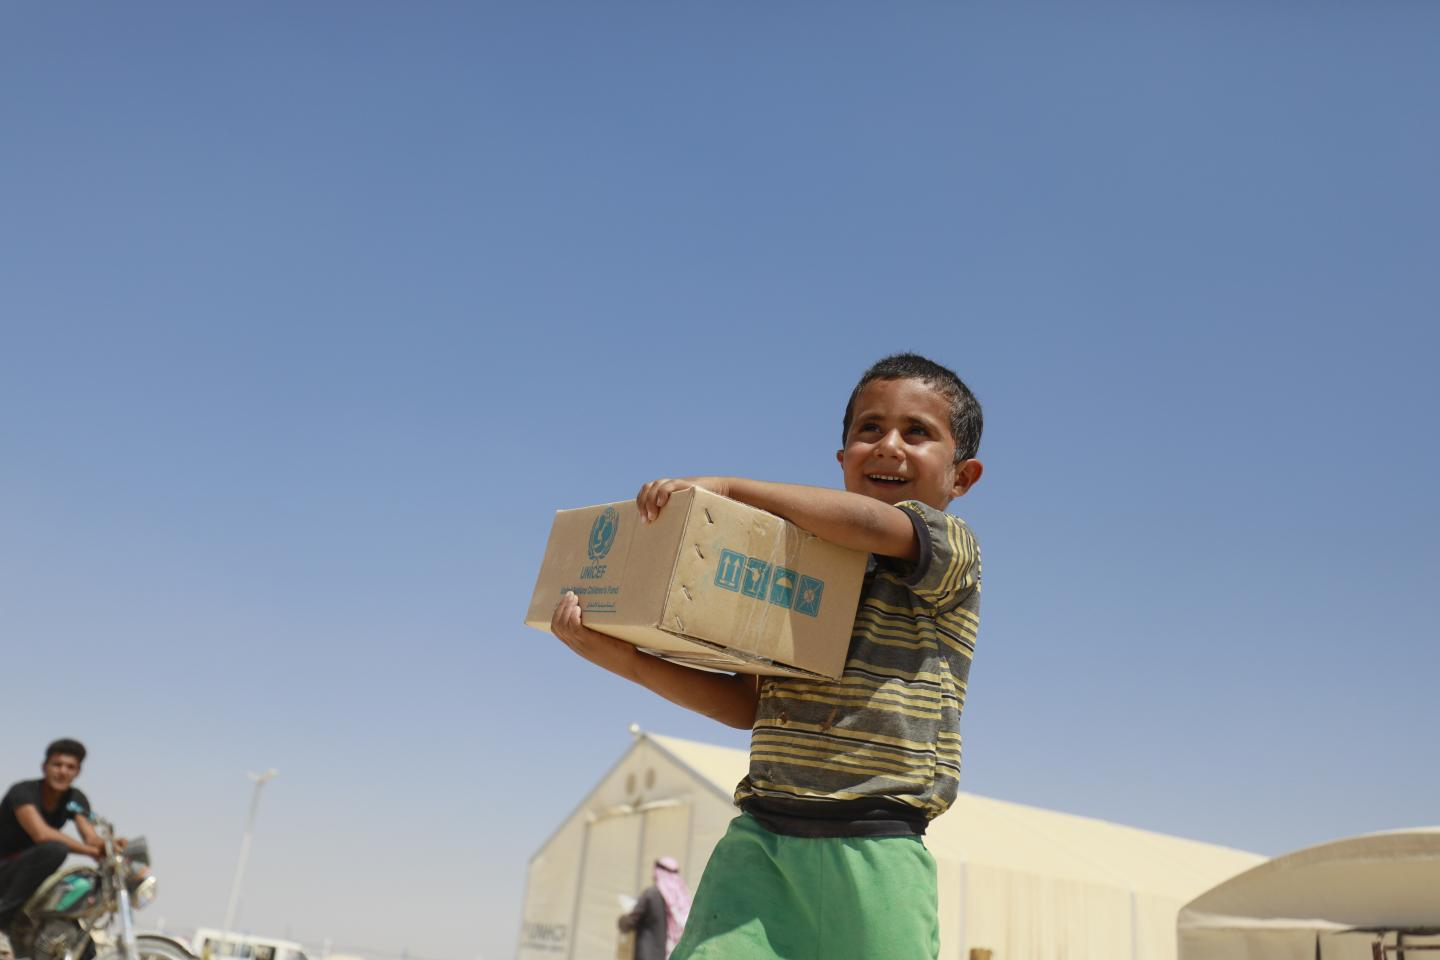 A child carrying a box